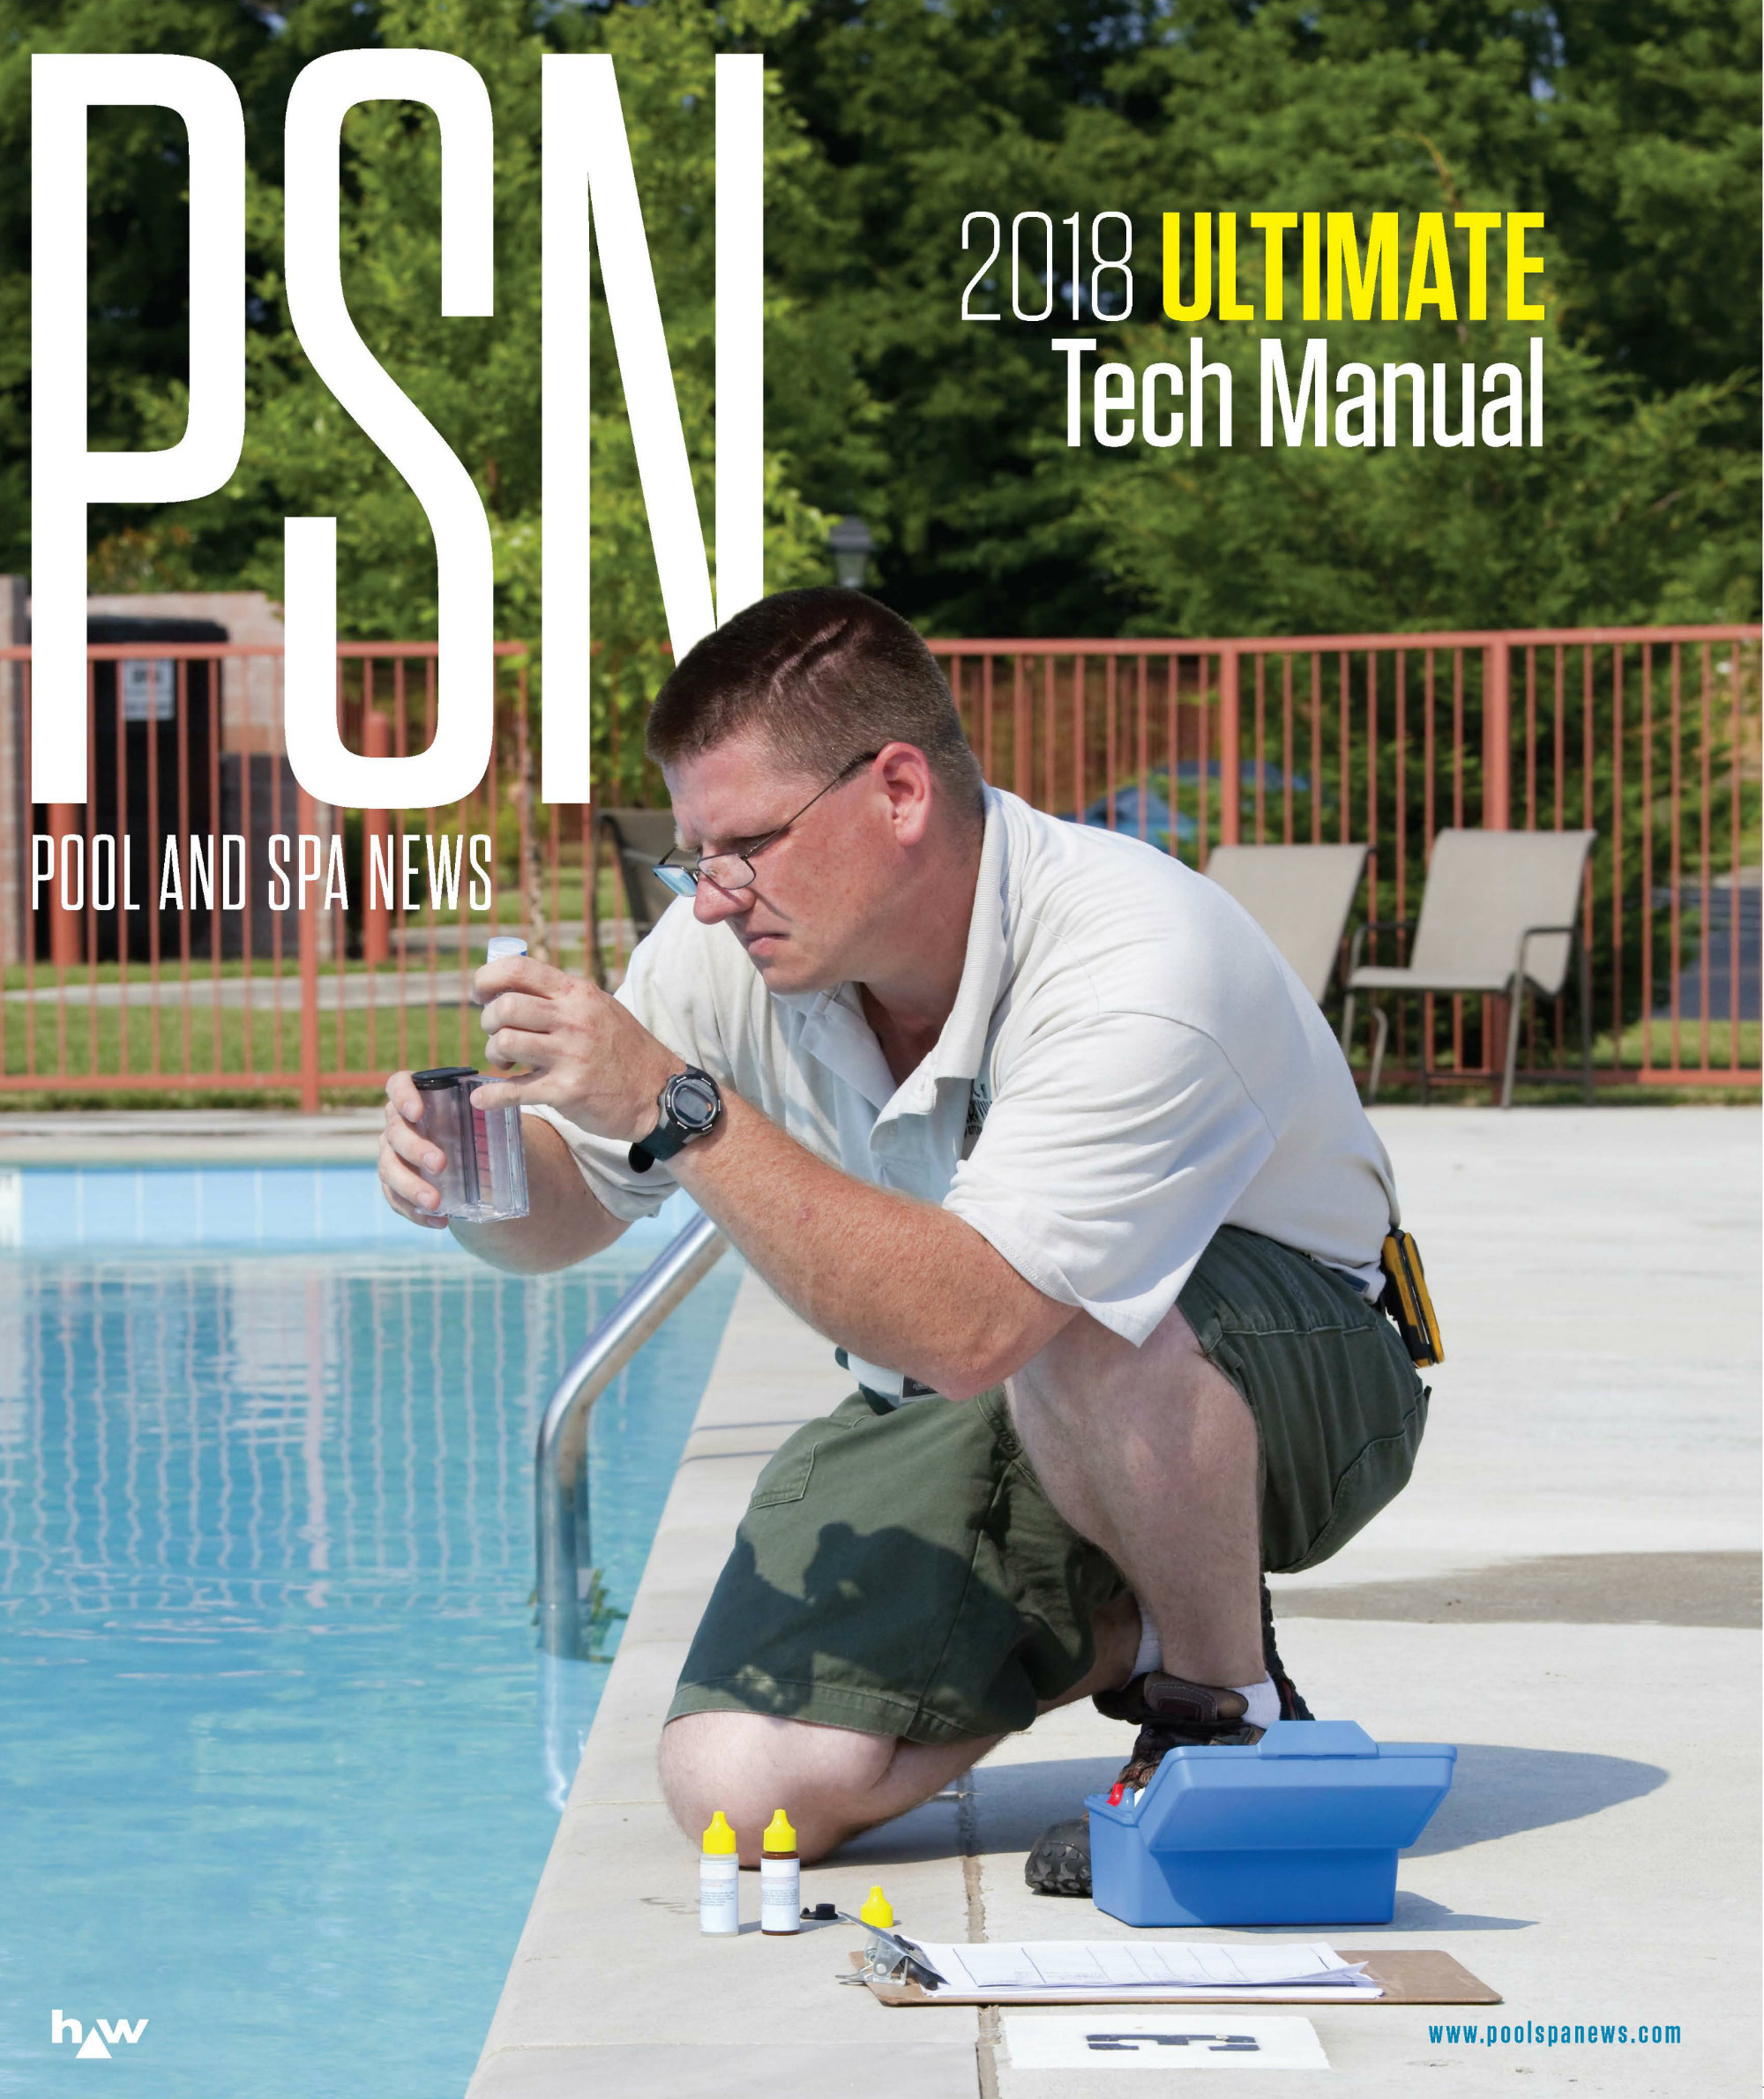 Pool and Spa News' 2018 Ultimate Tech Manual Now Available | Aquatics  International Magazine | Maintenance, Education, Pools, Spas